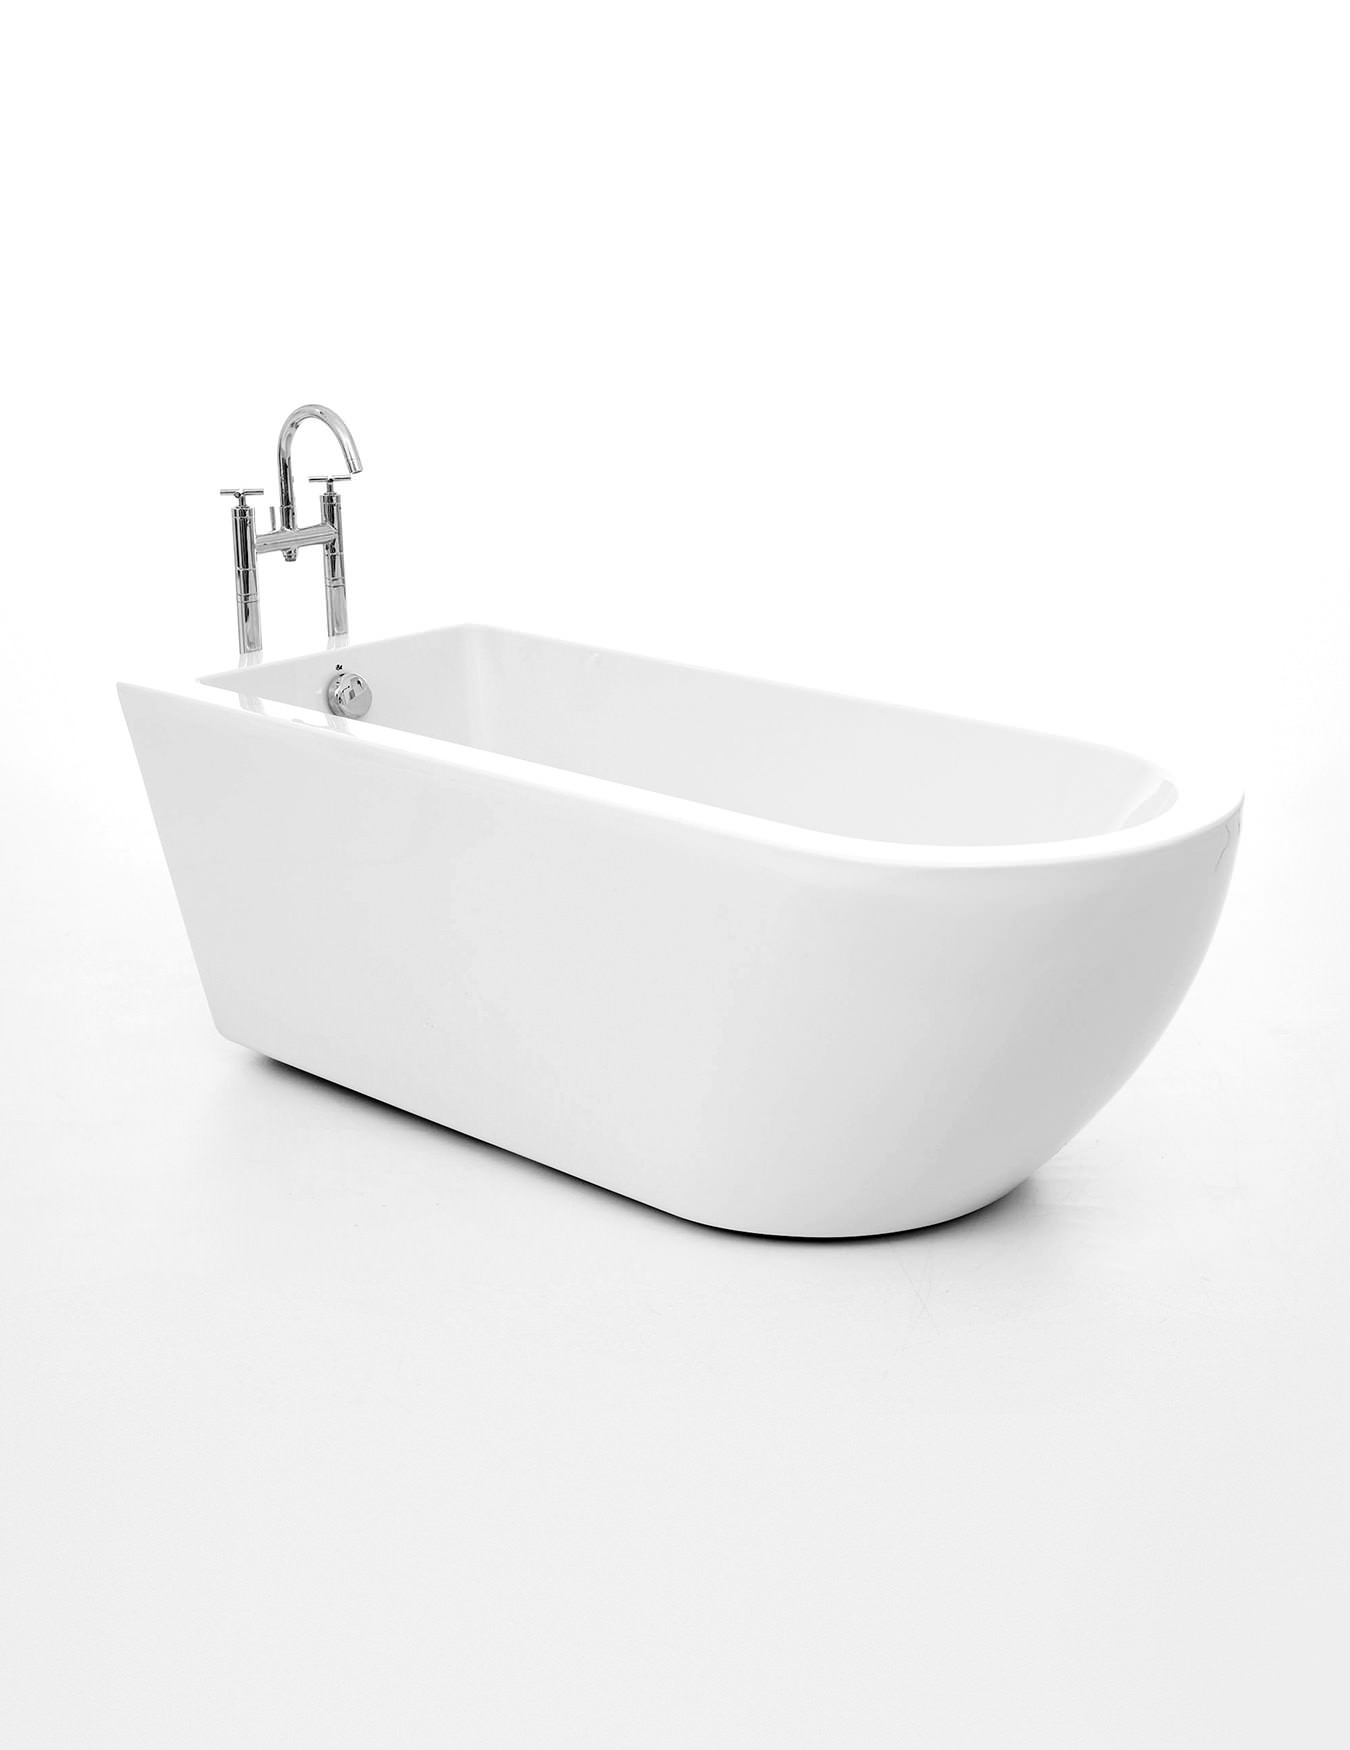 Royce morgan barwick single ended freestanding bath 1690 x for Bathroom bath